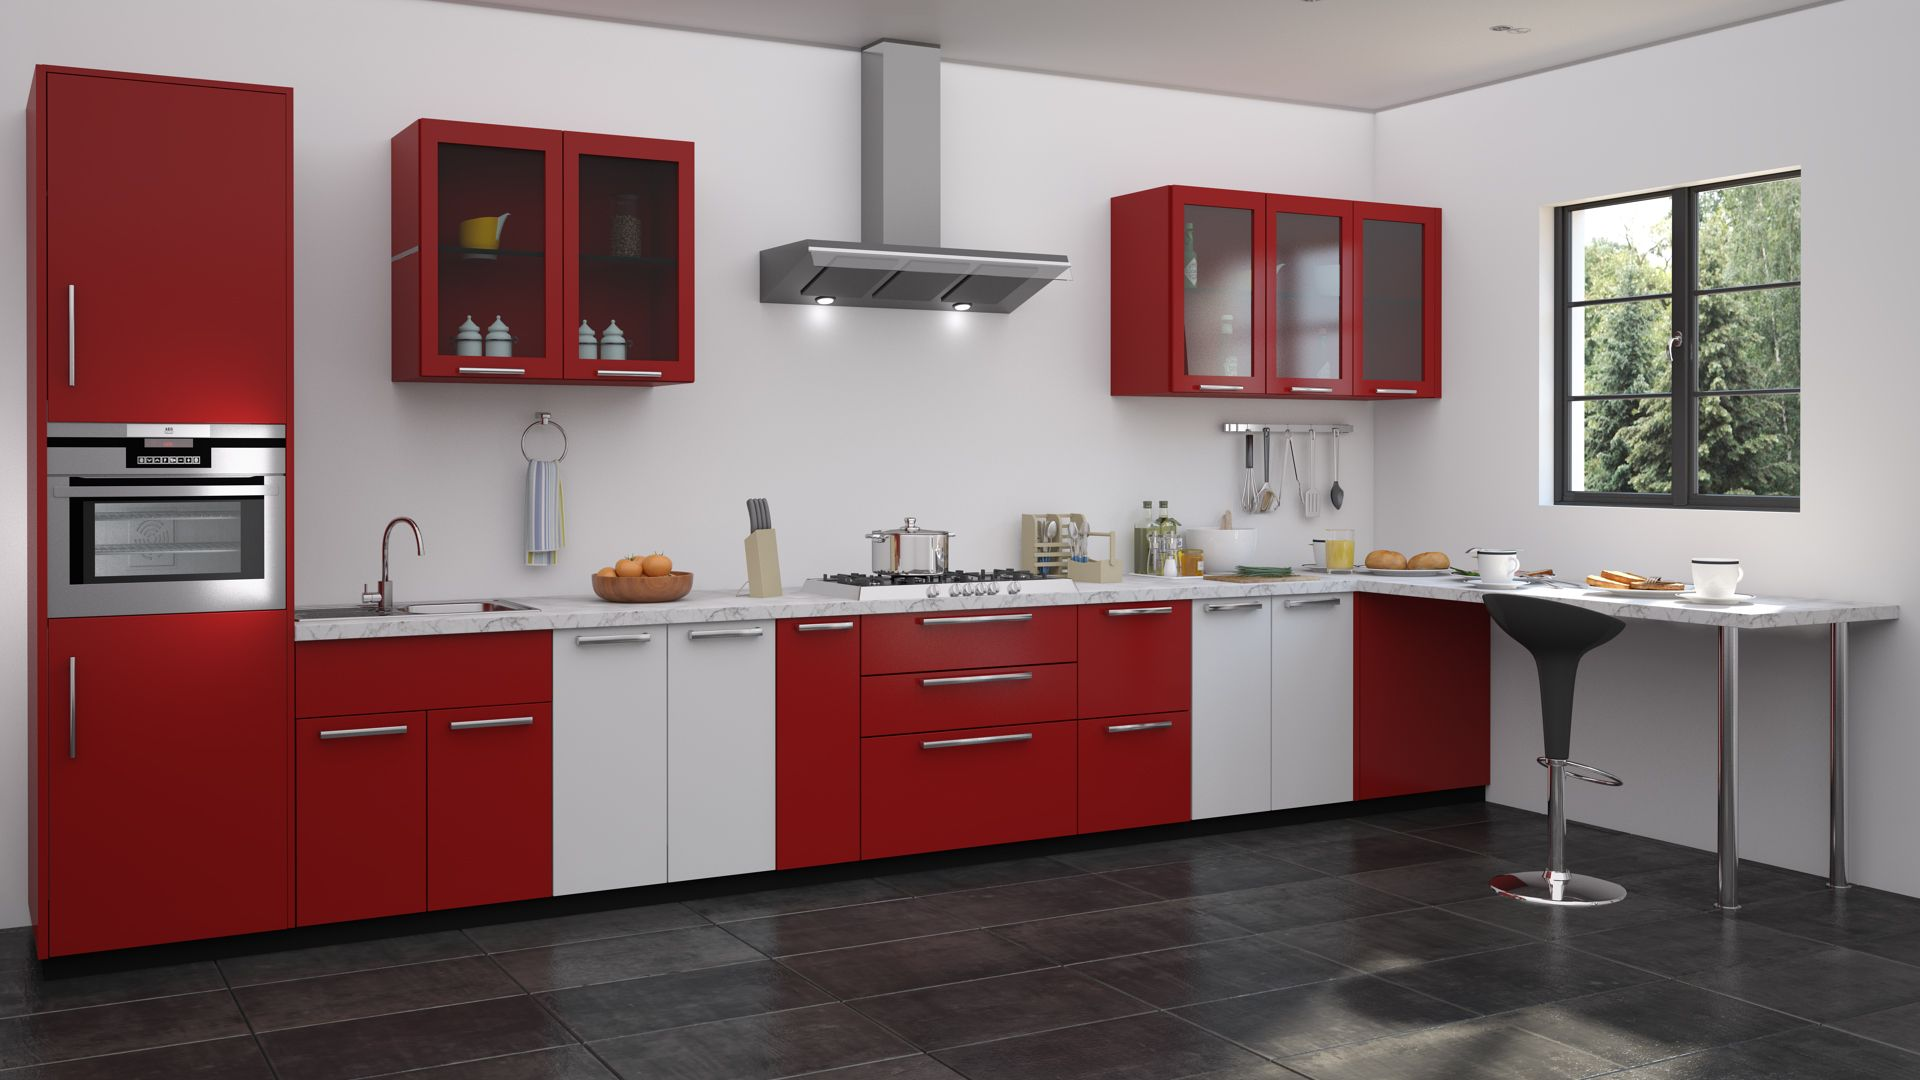 Red and white kitchen designs  Straight kitchen designs